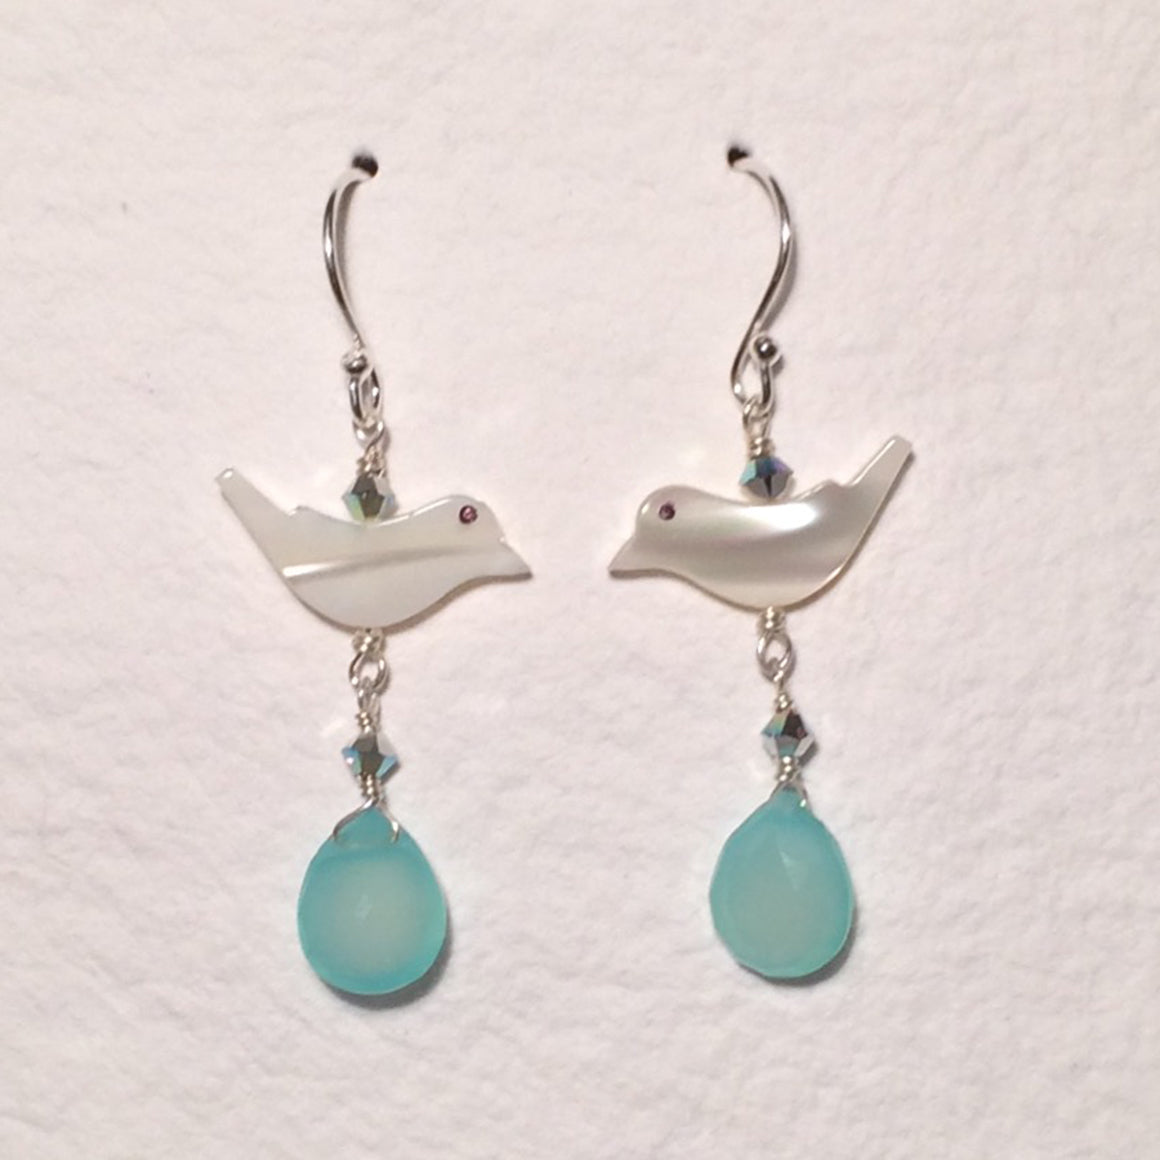 Aqua Chalcedony Bird Earrings